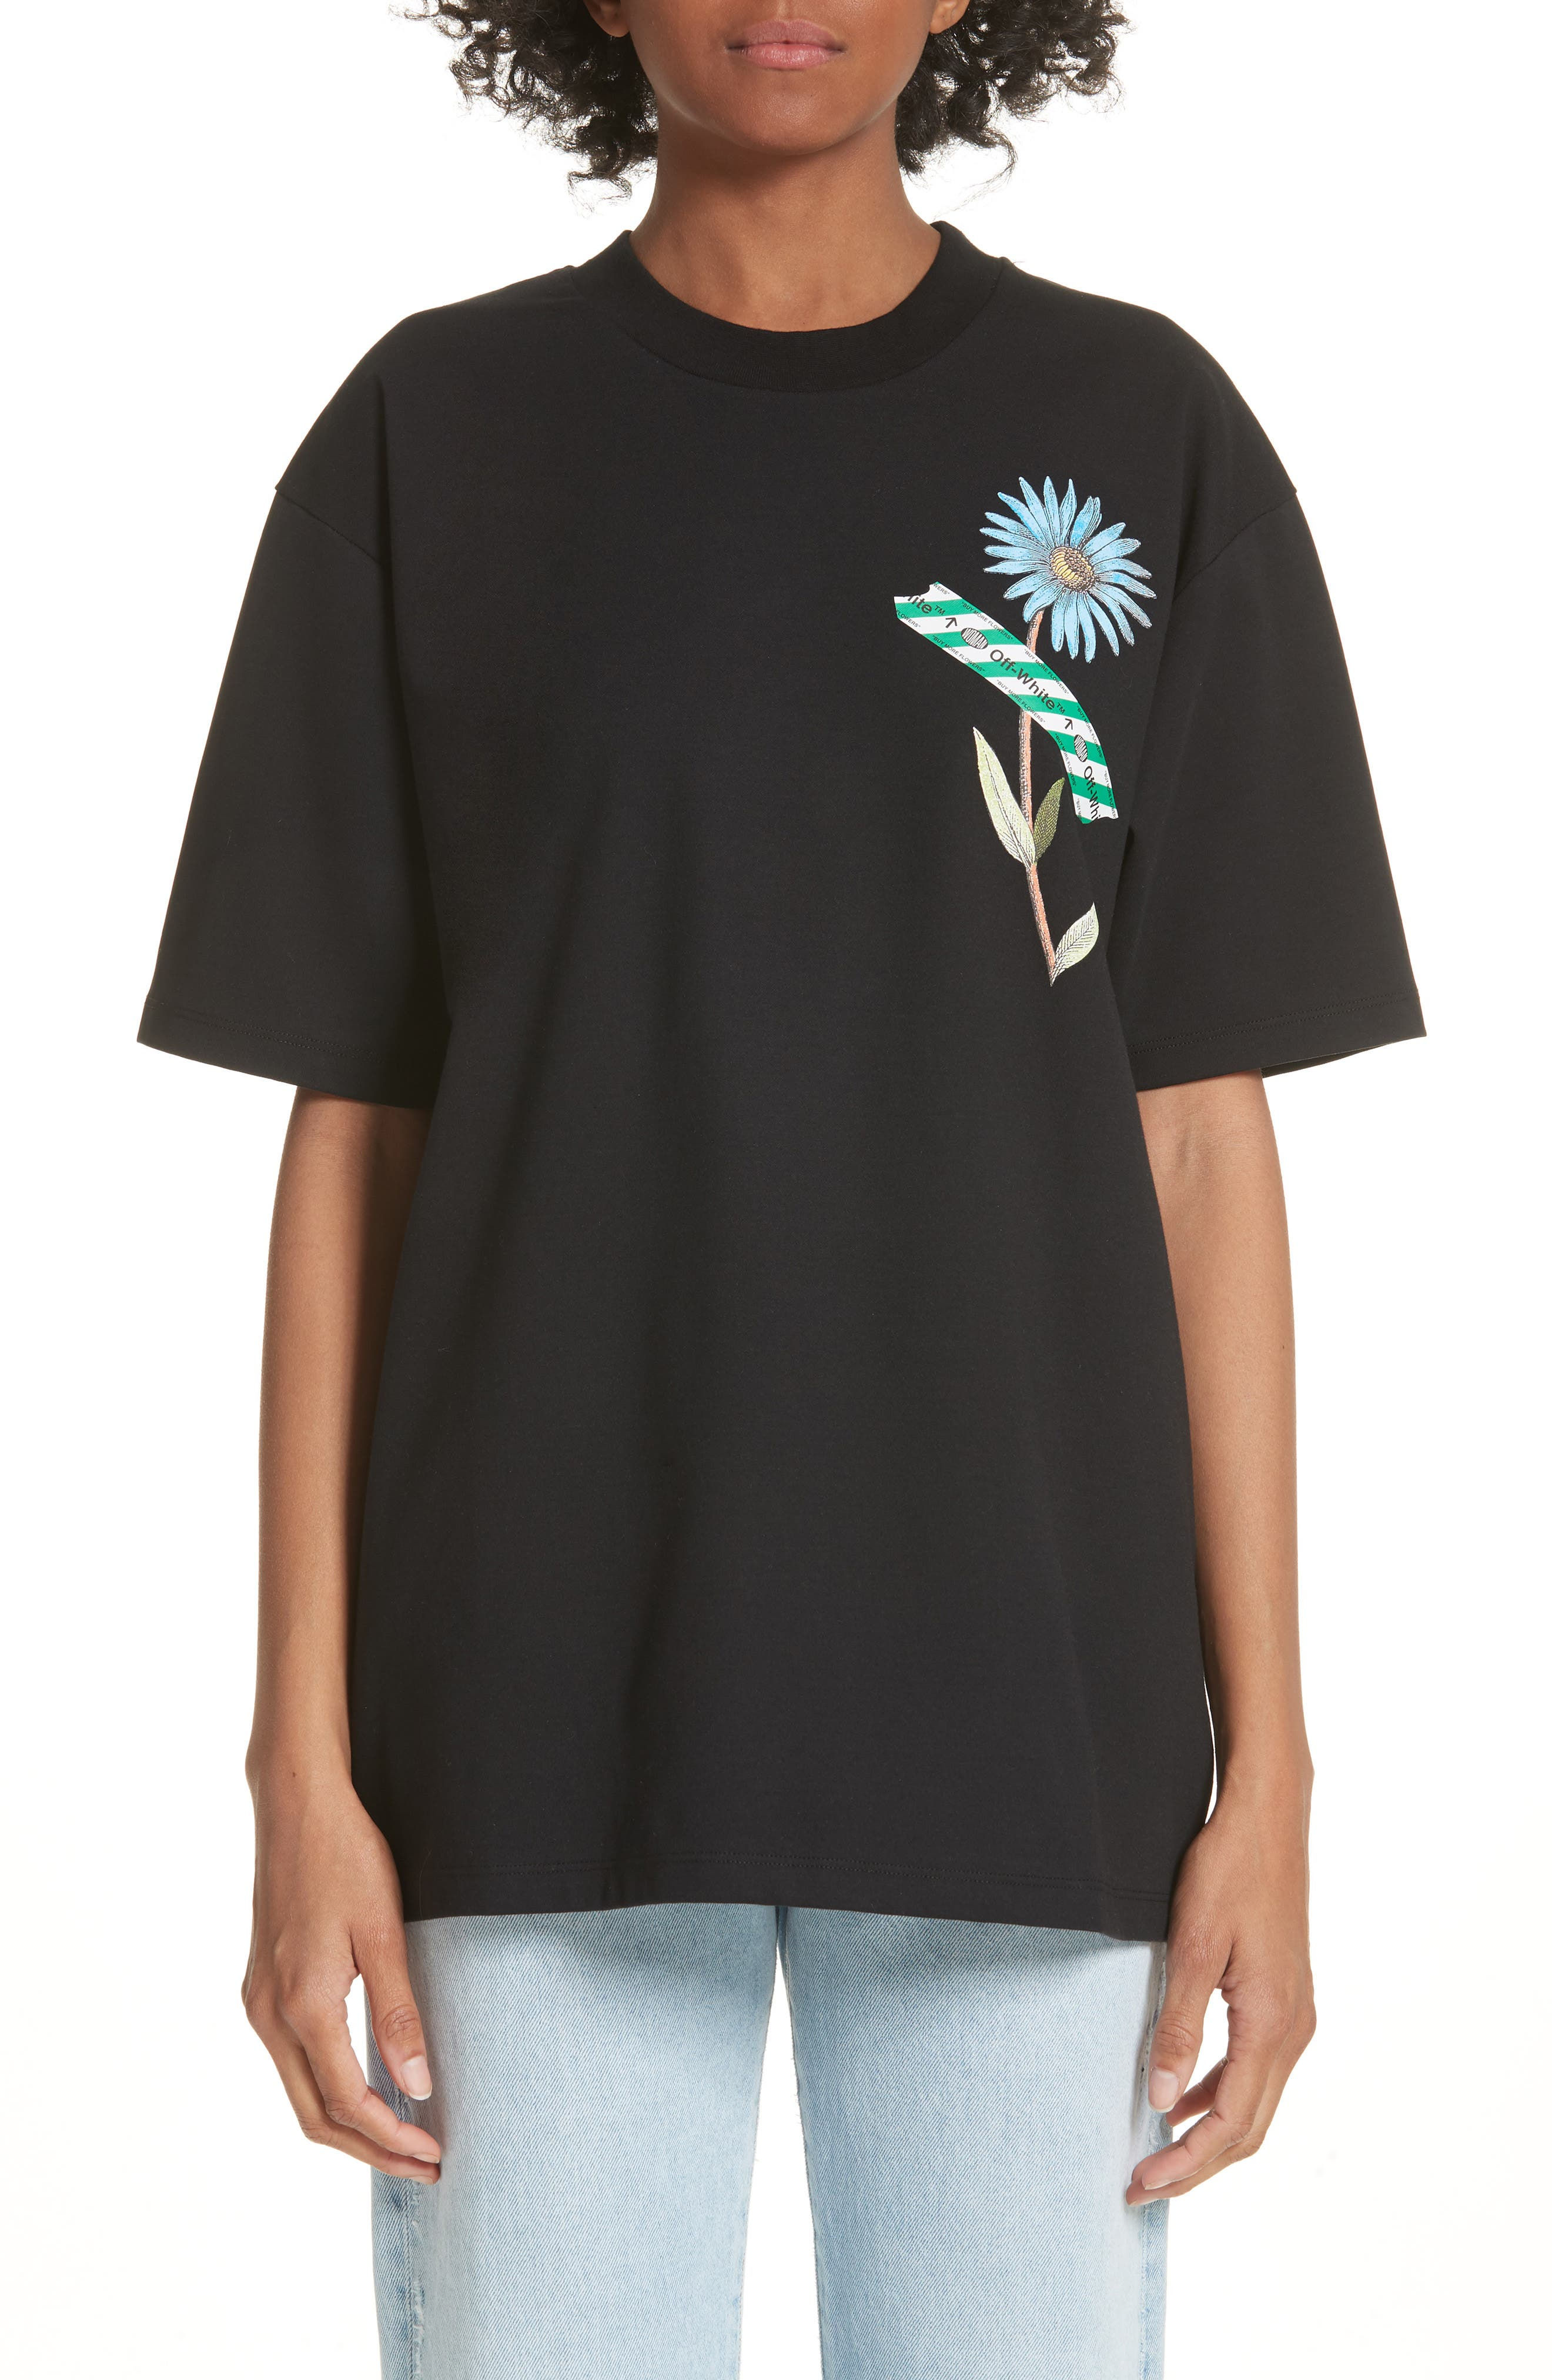 Flower Shop Tee,                             Main thumbnail 1, color,                             001